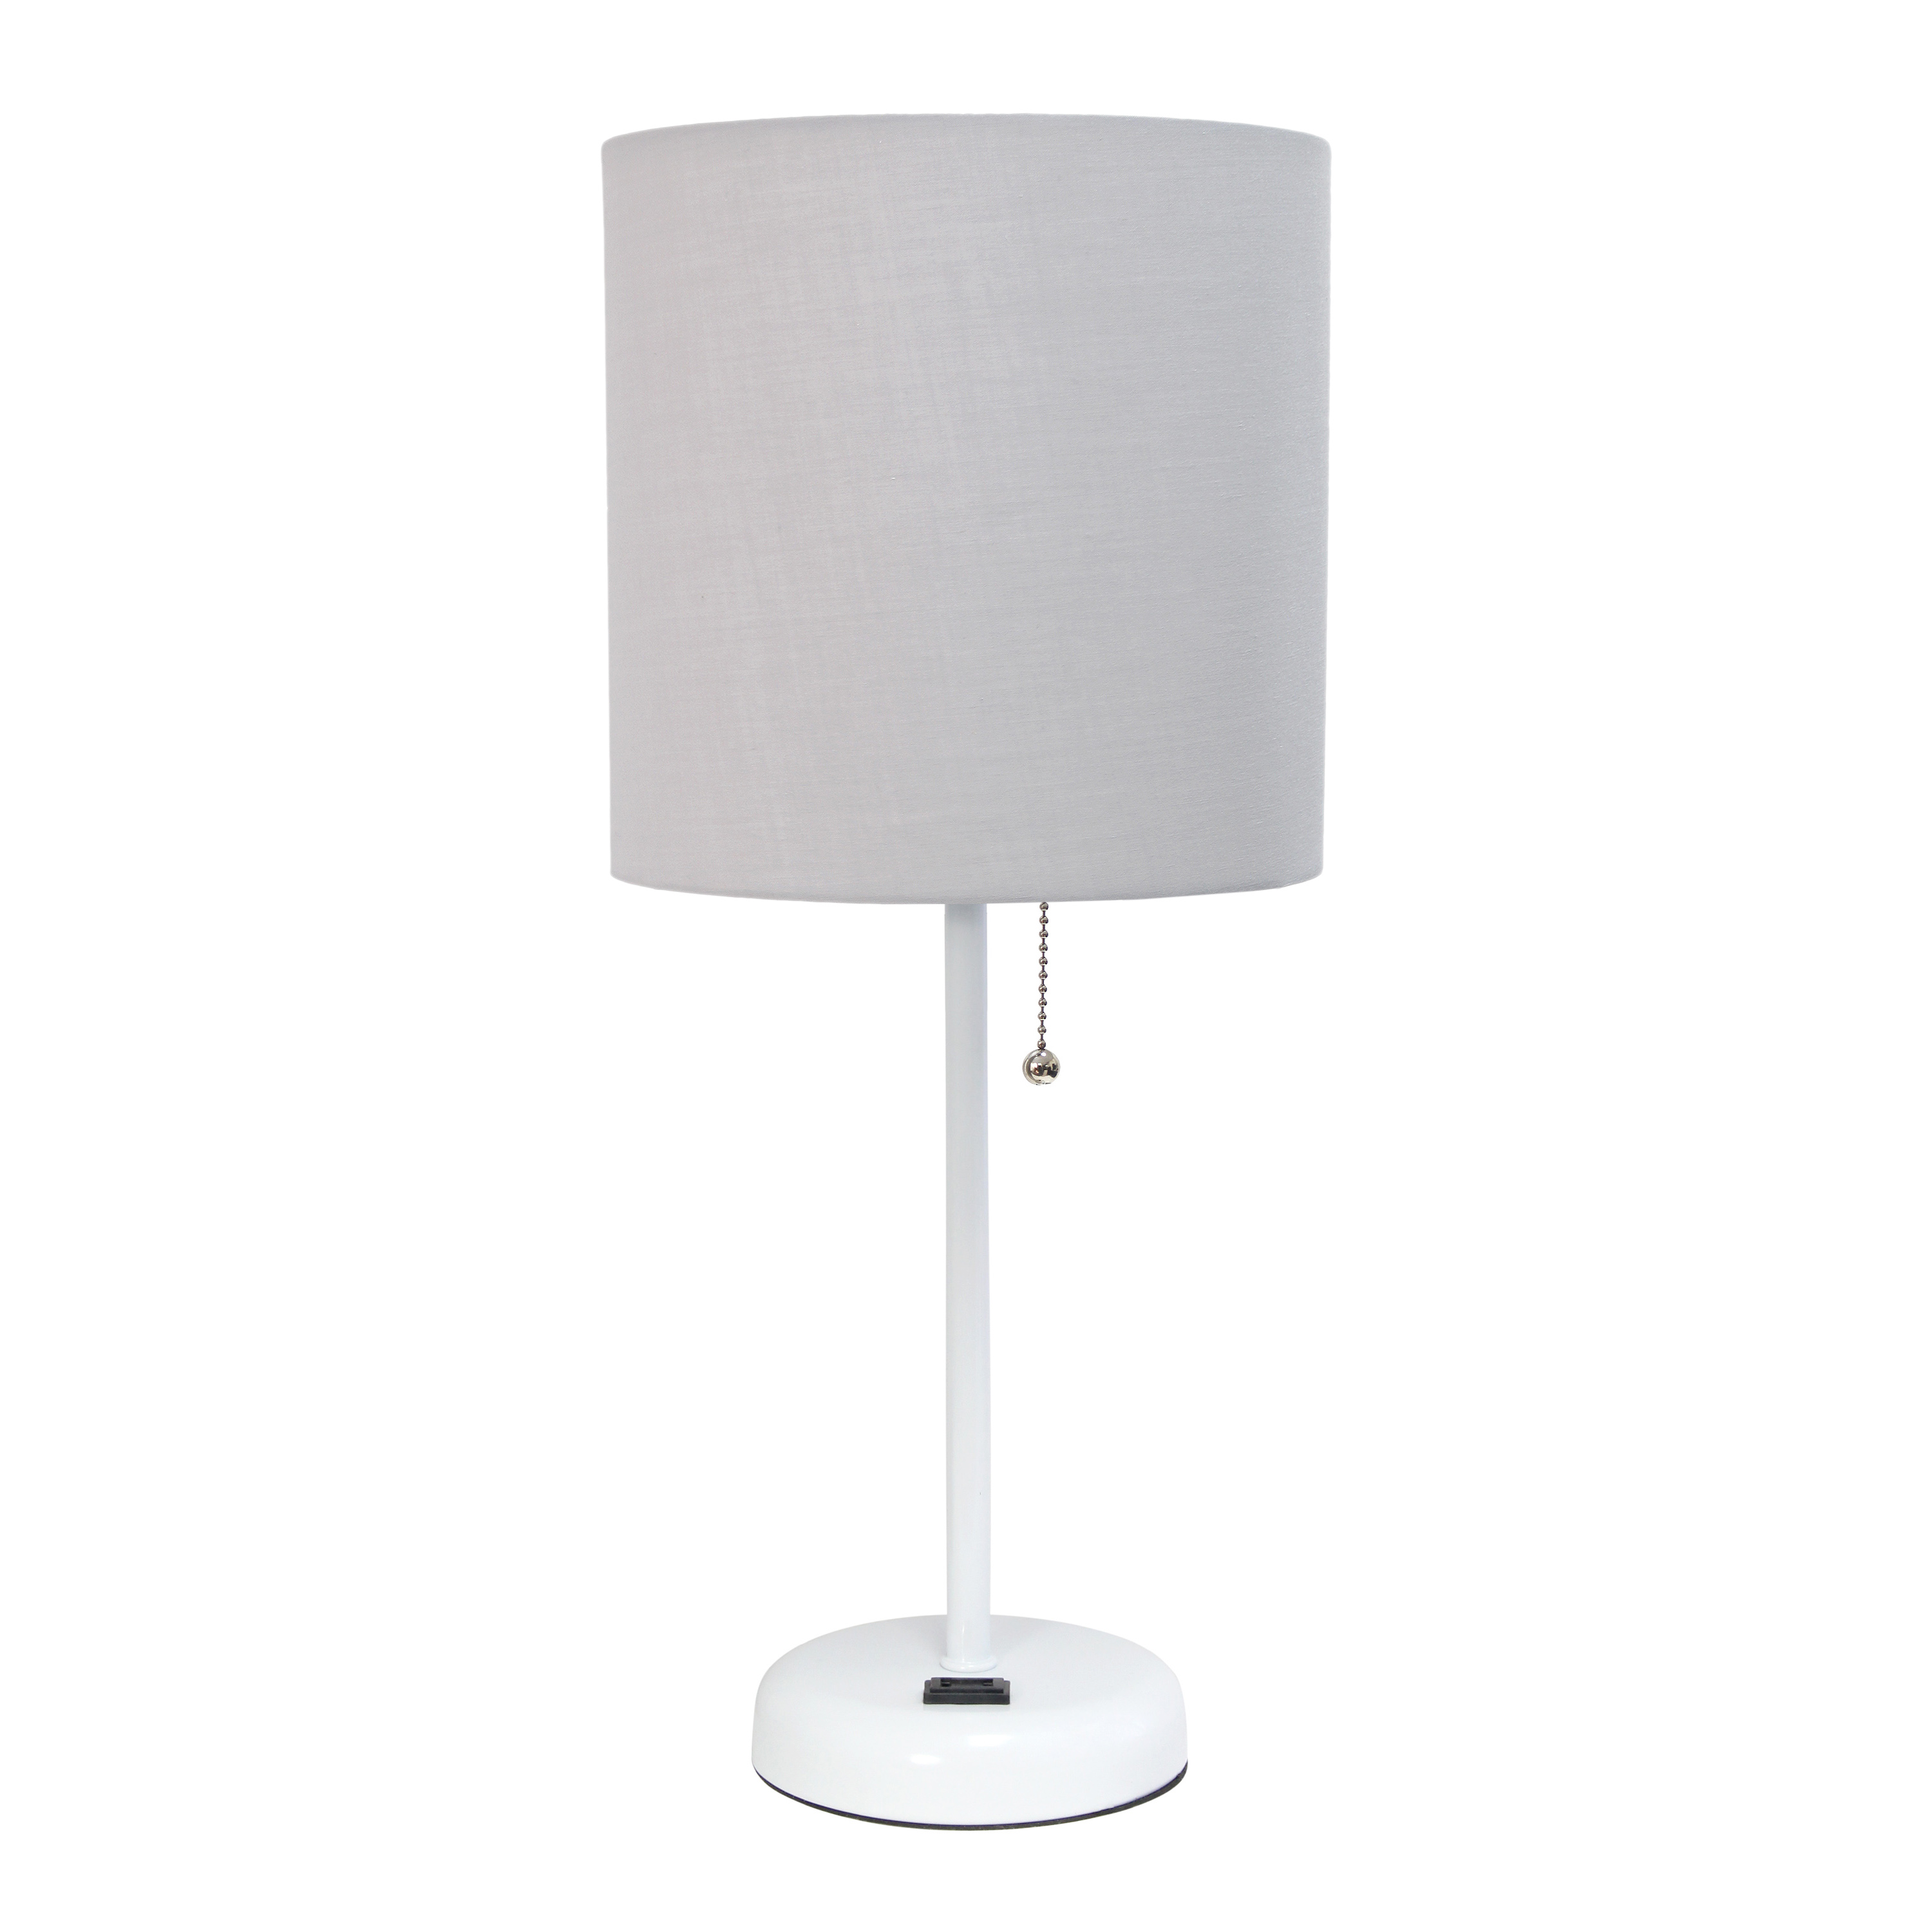 LimeLights White Stick Lamp with Charging Outlet and Fabric Shade, Gray